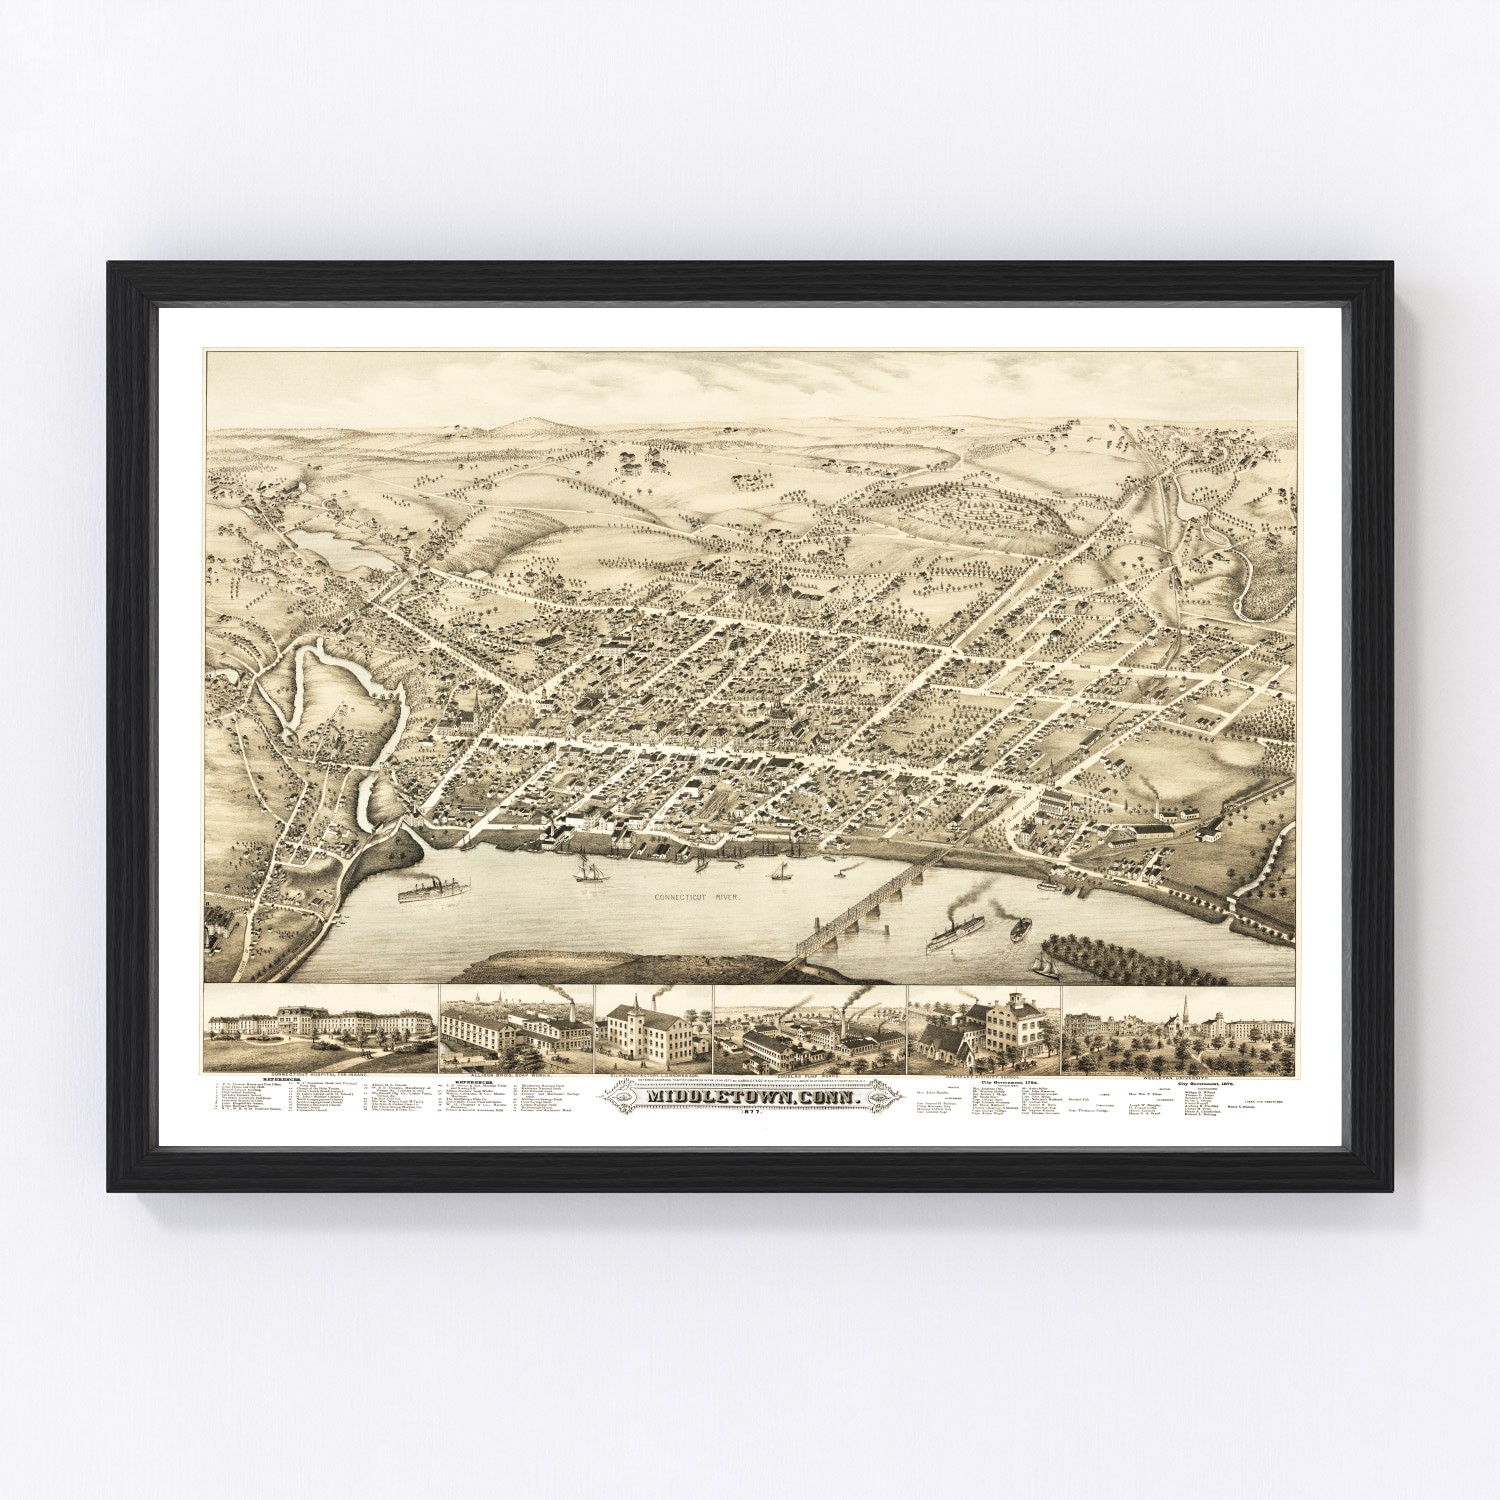 Vintage Map of Middletown, Connecticut 1877